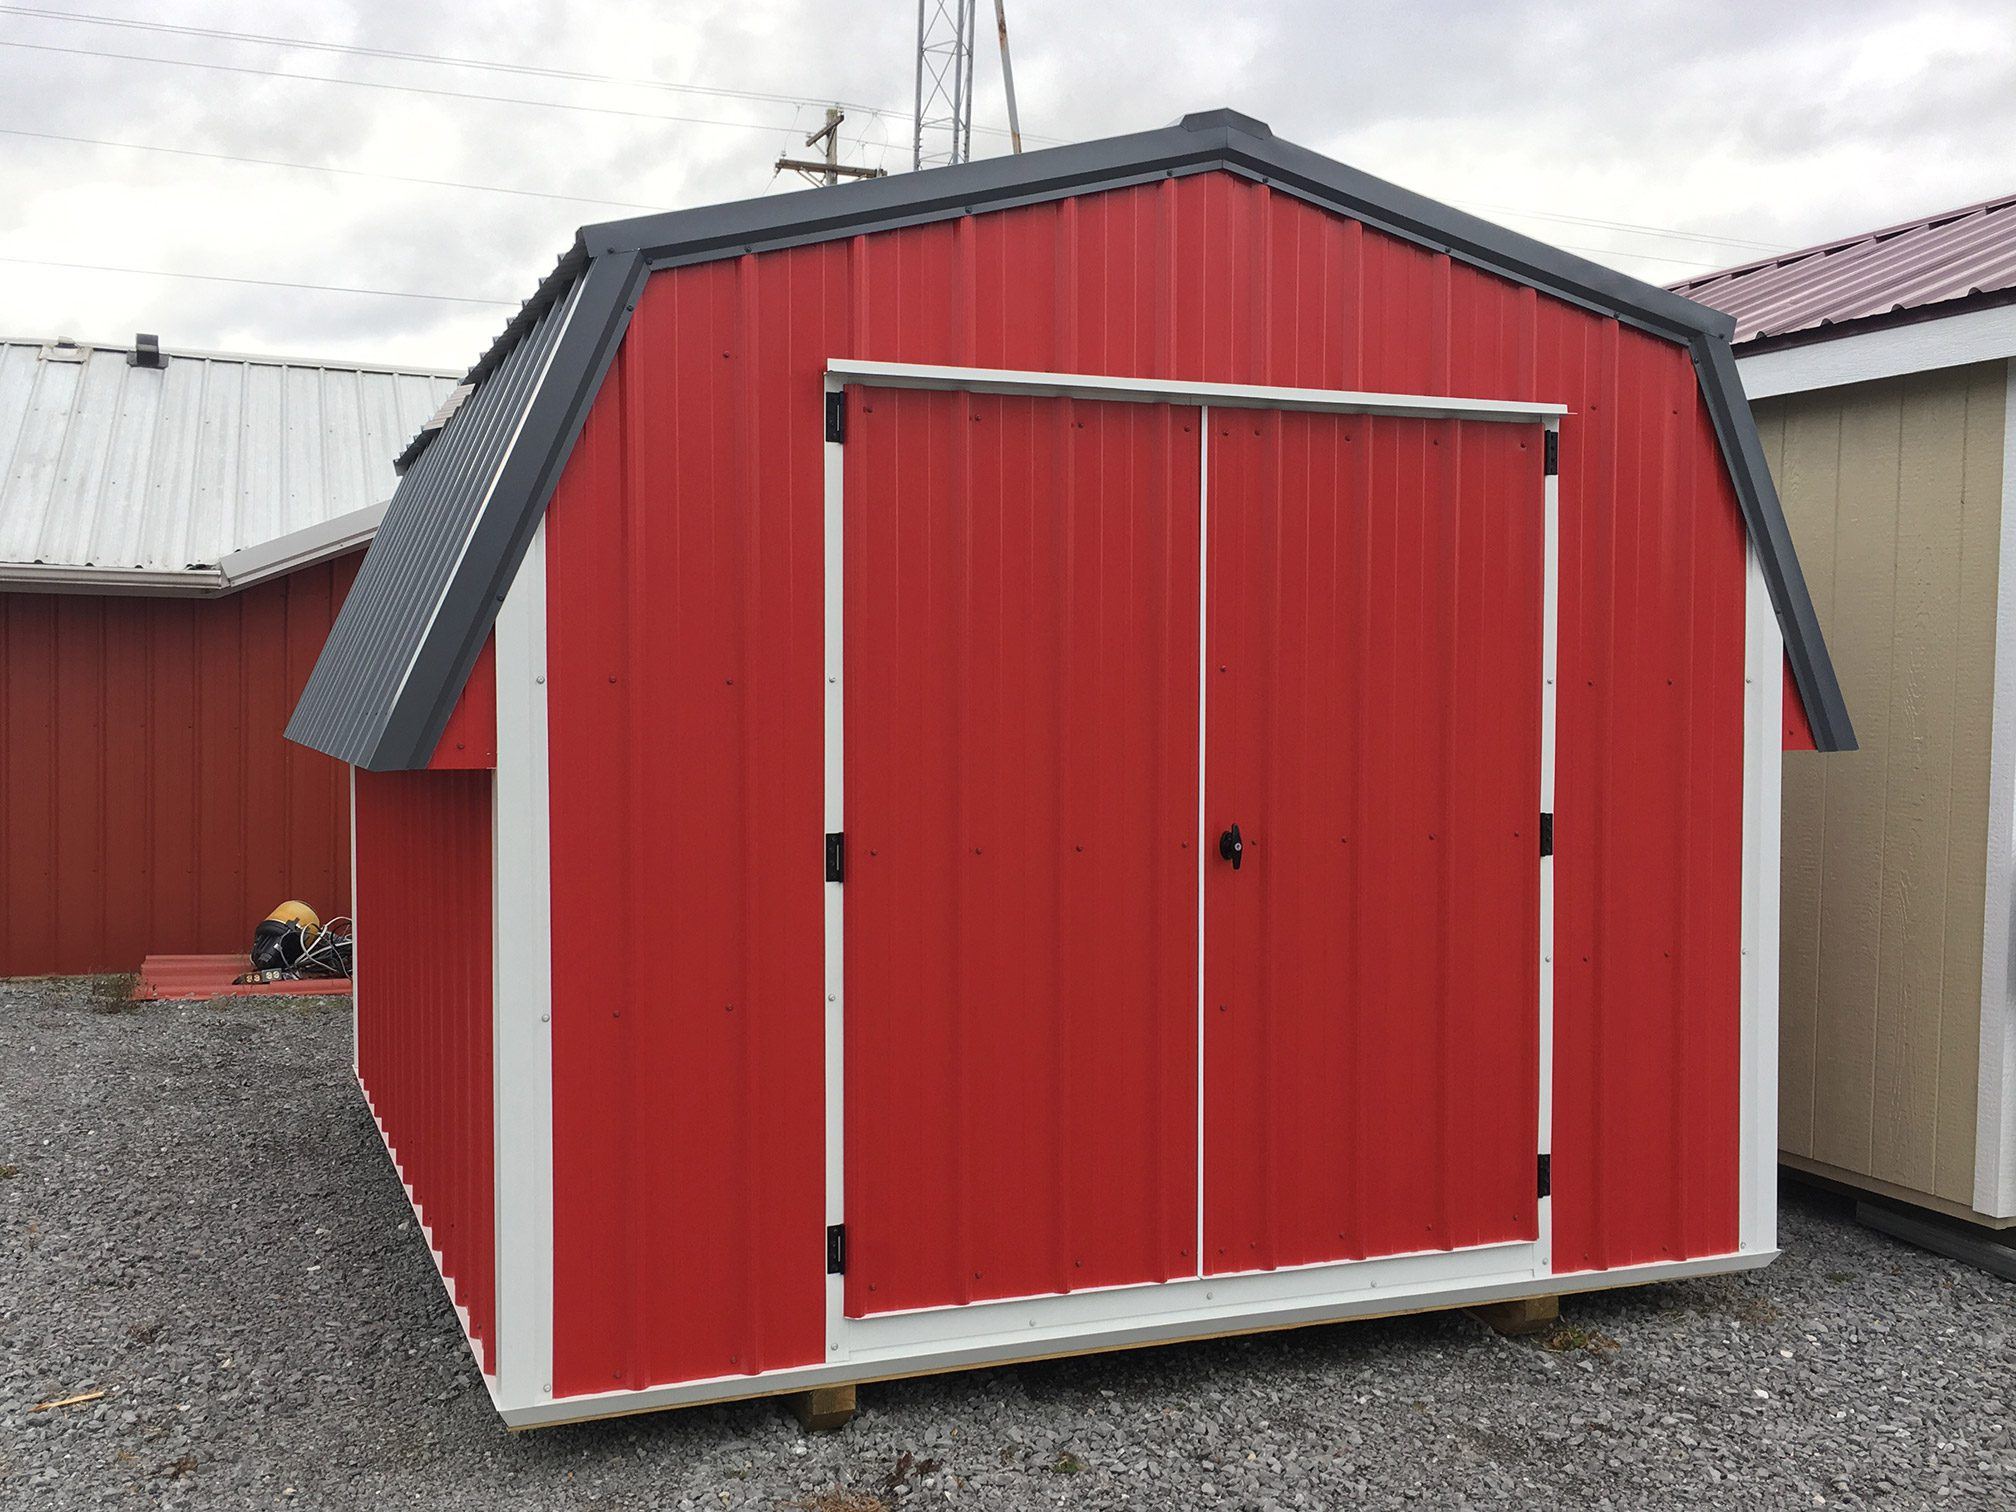 Red, White, and Black short metal building roughly 10x12